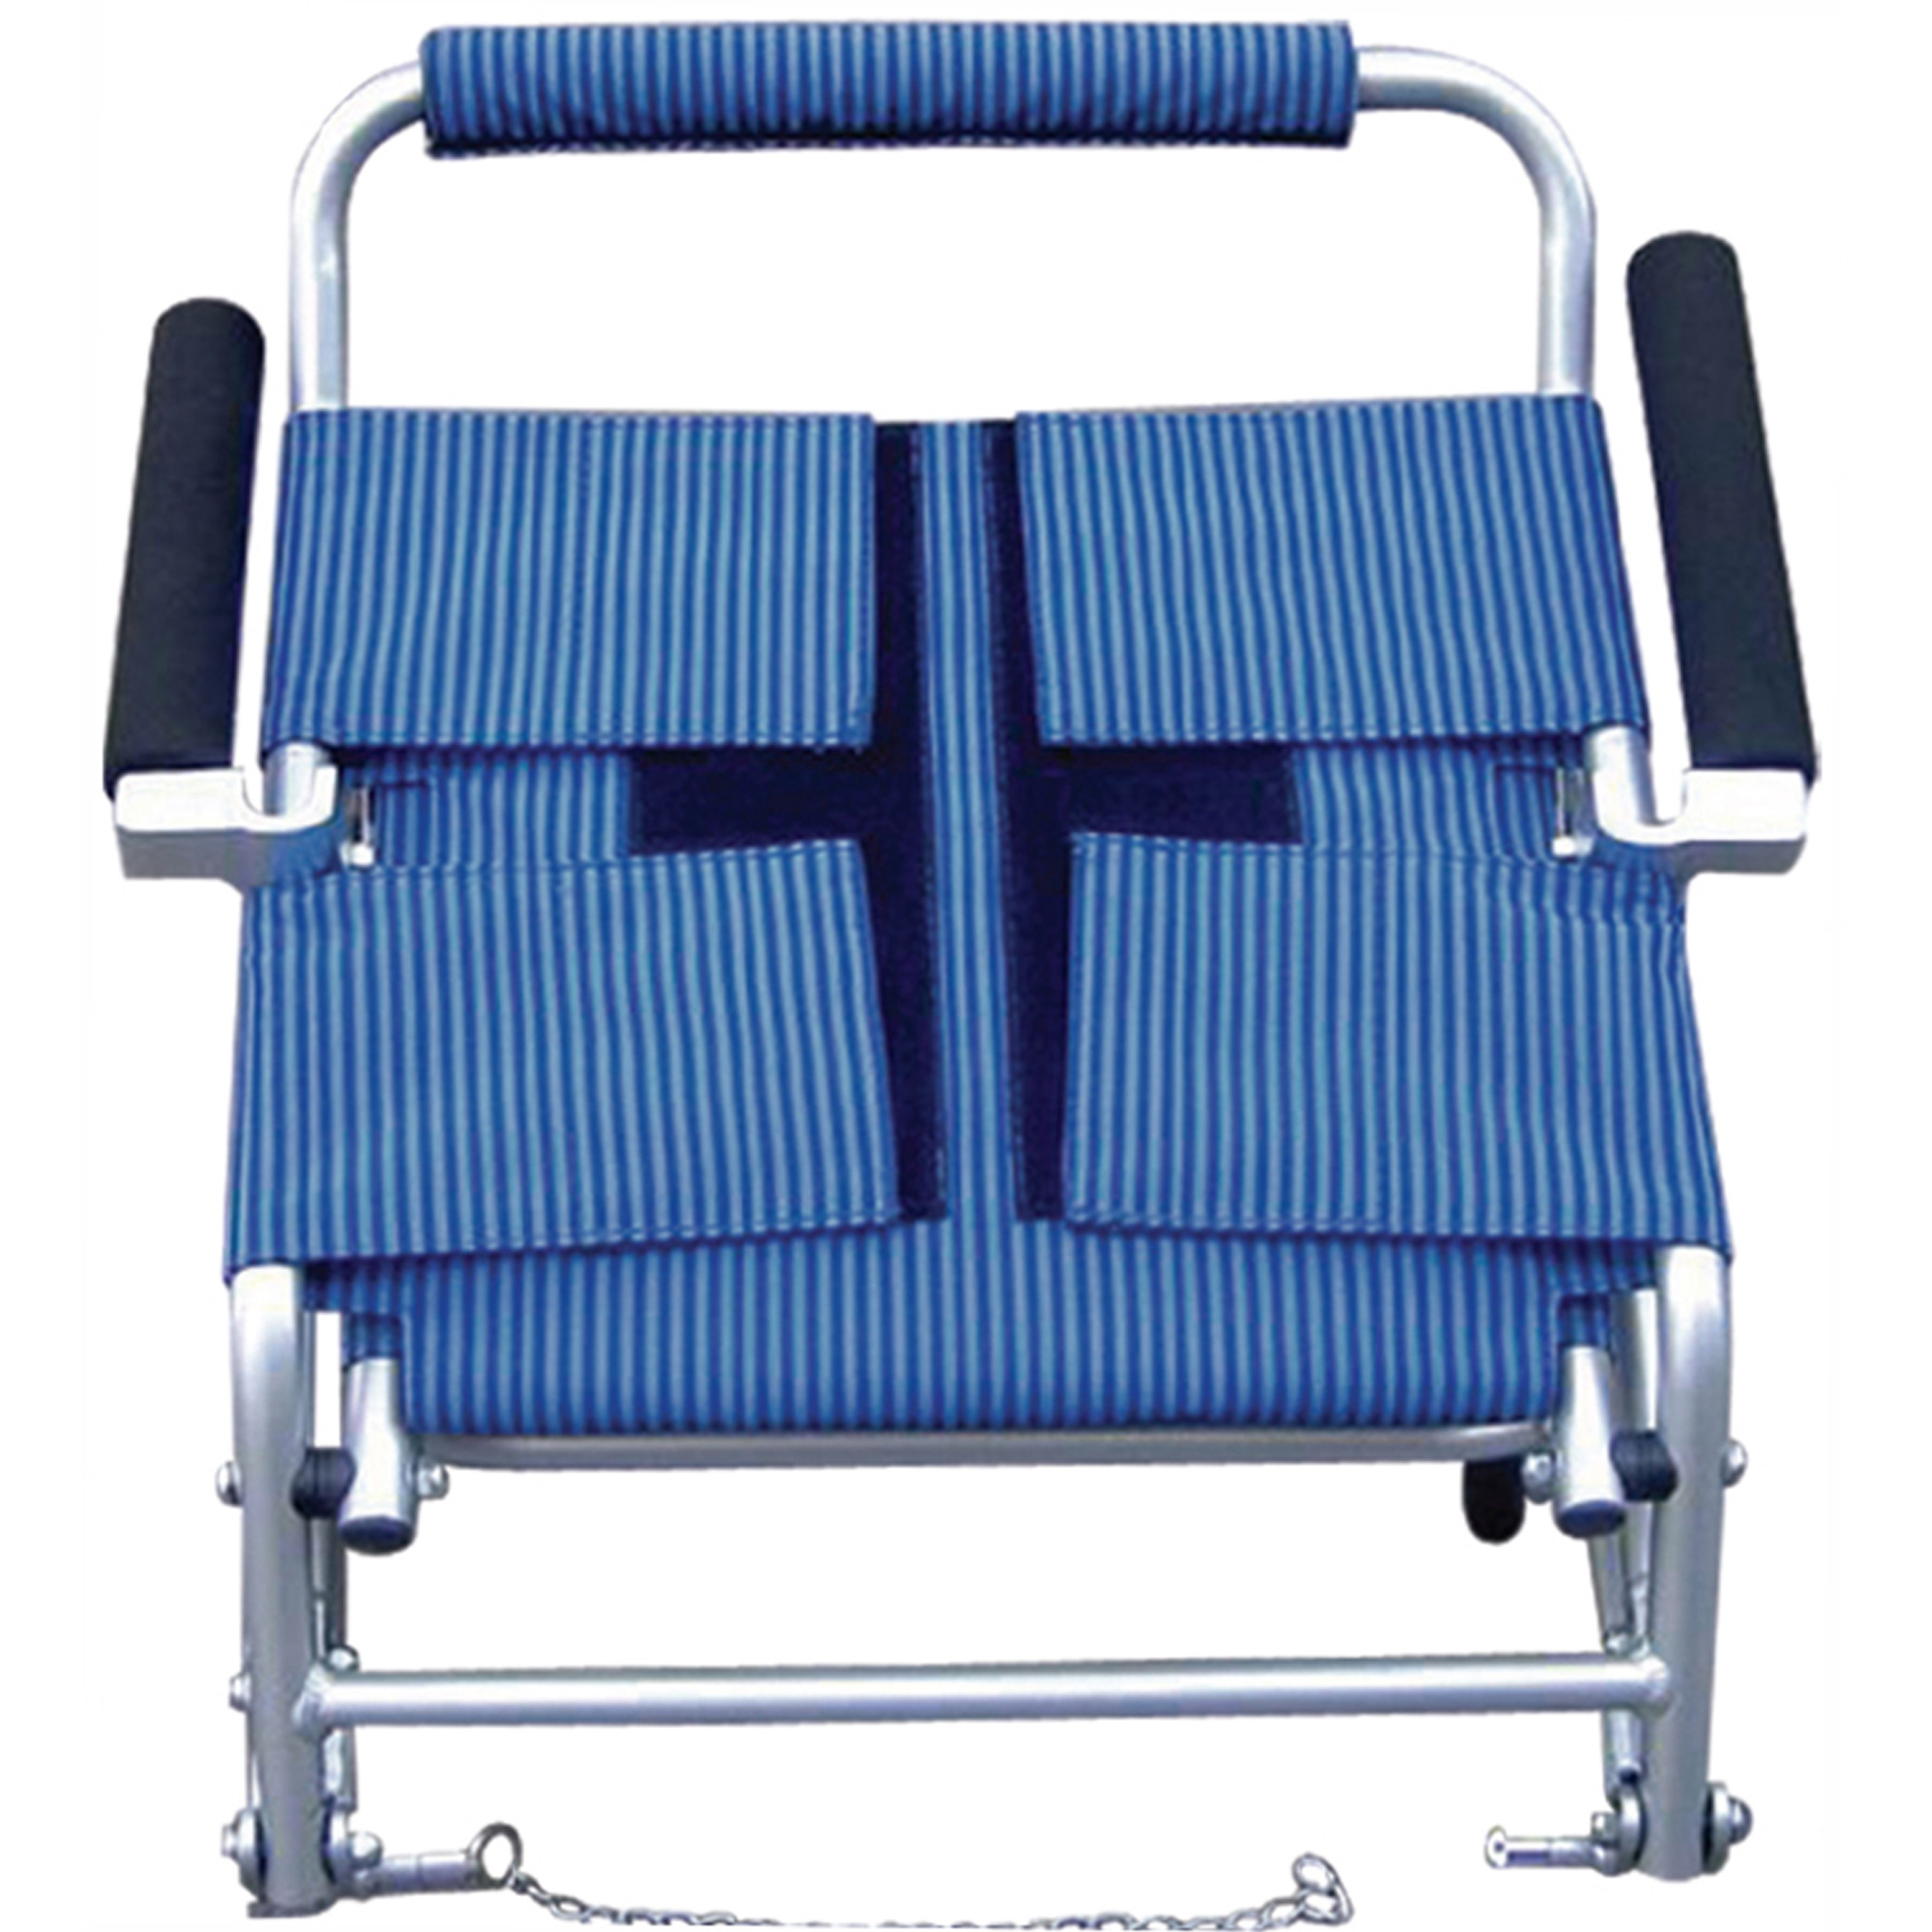 bariatric transport chair 24 seat ergonomic saddle drive medical super light folding with